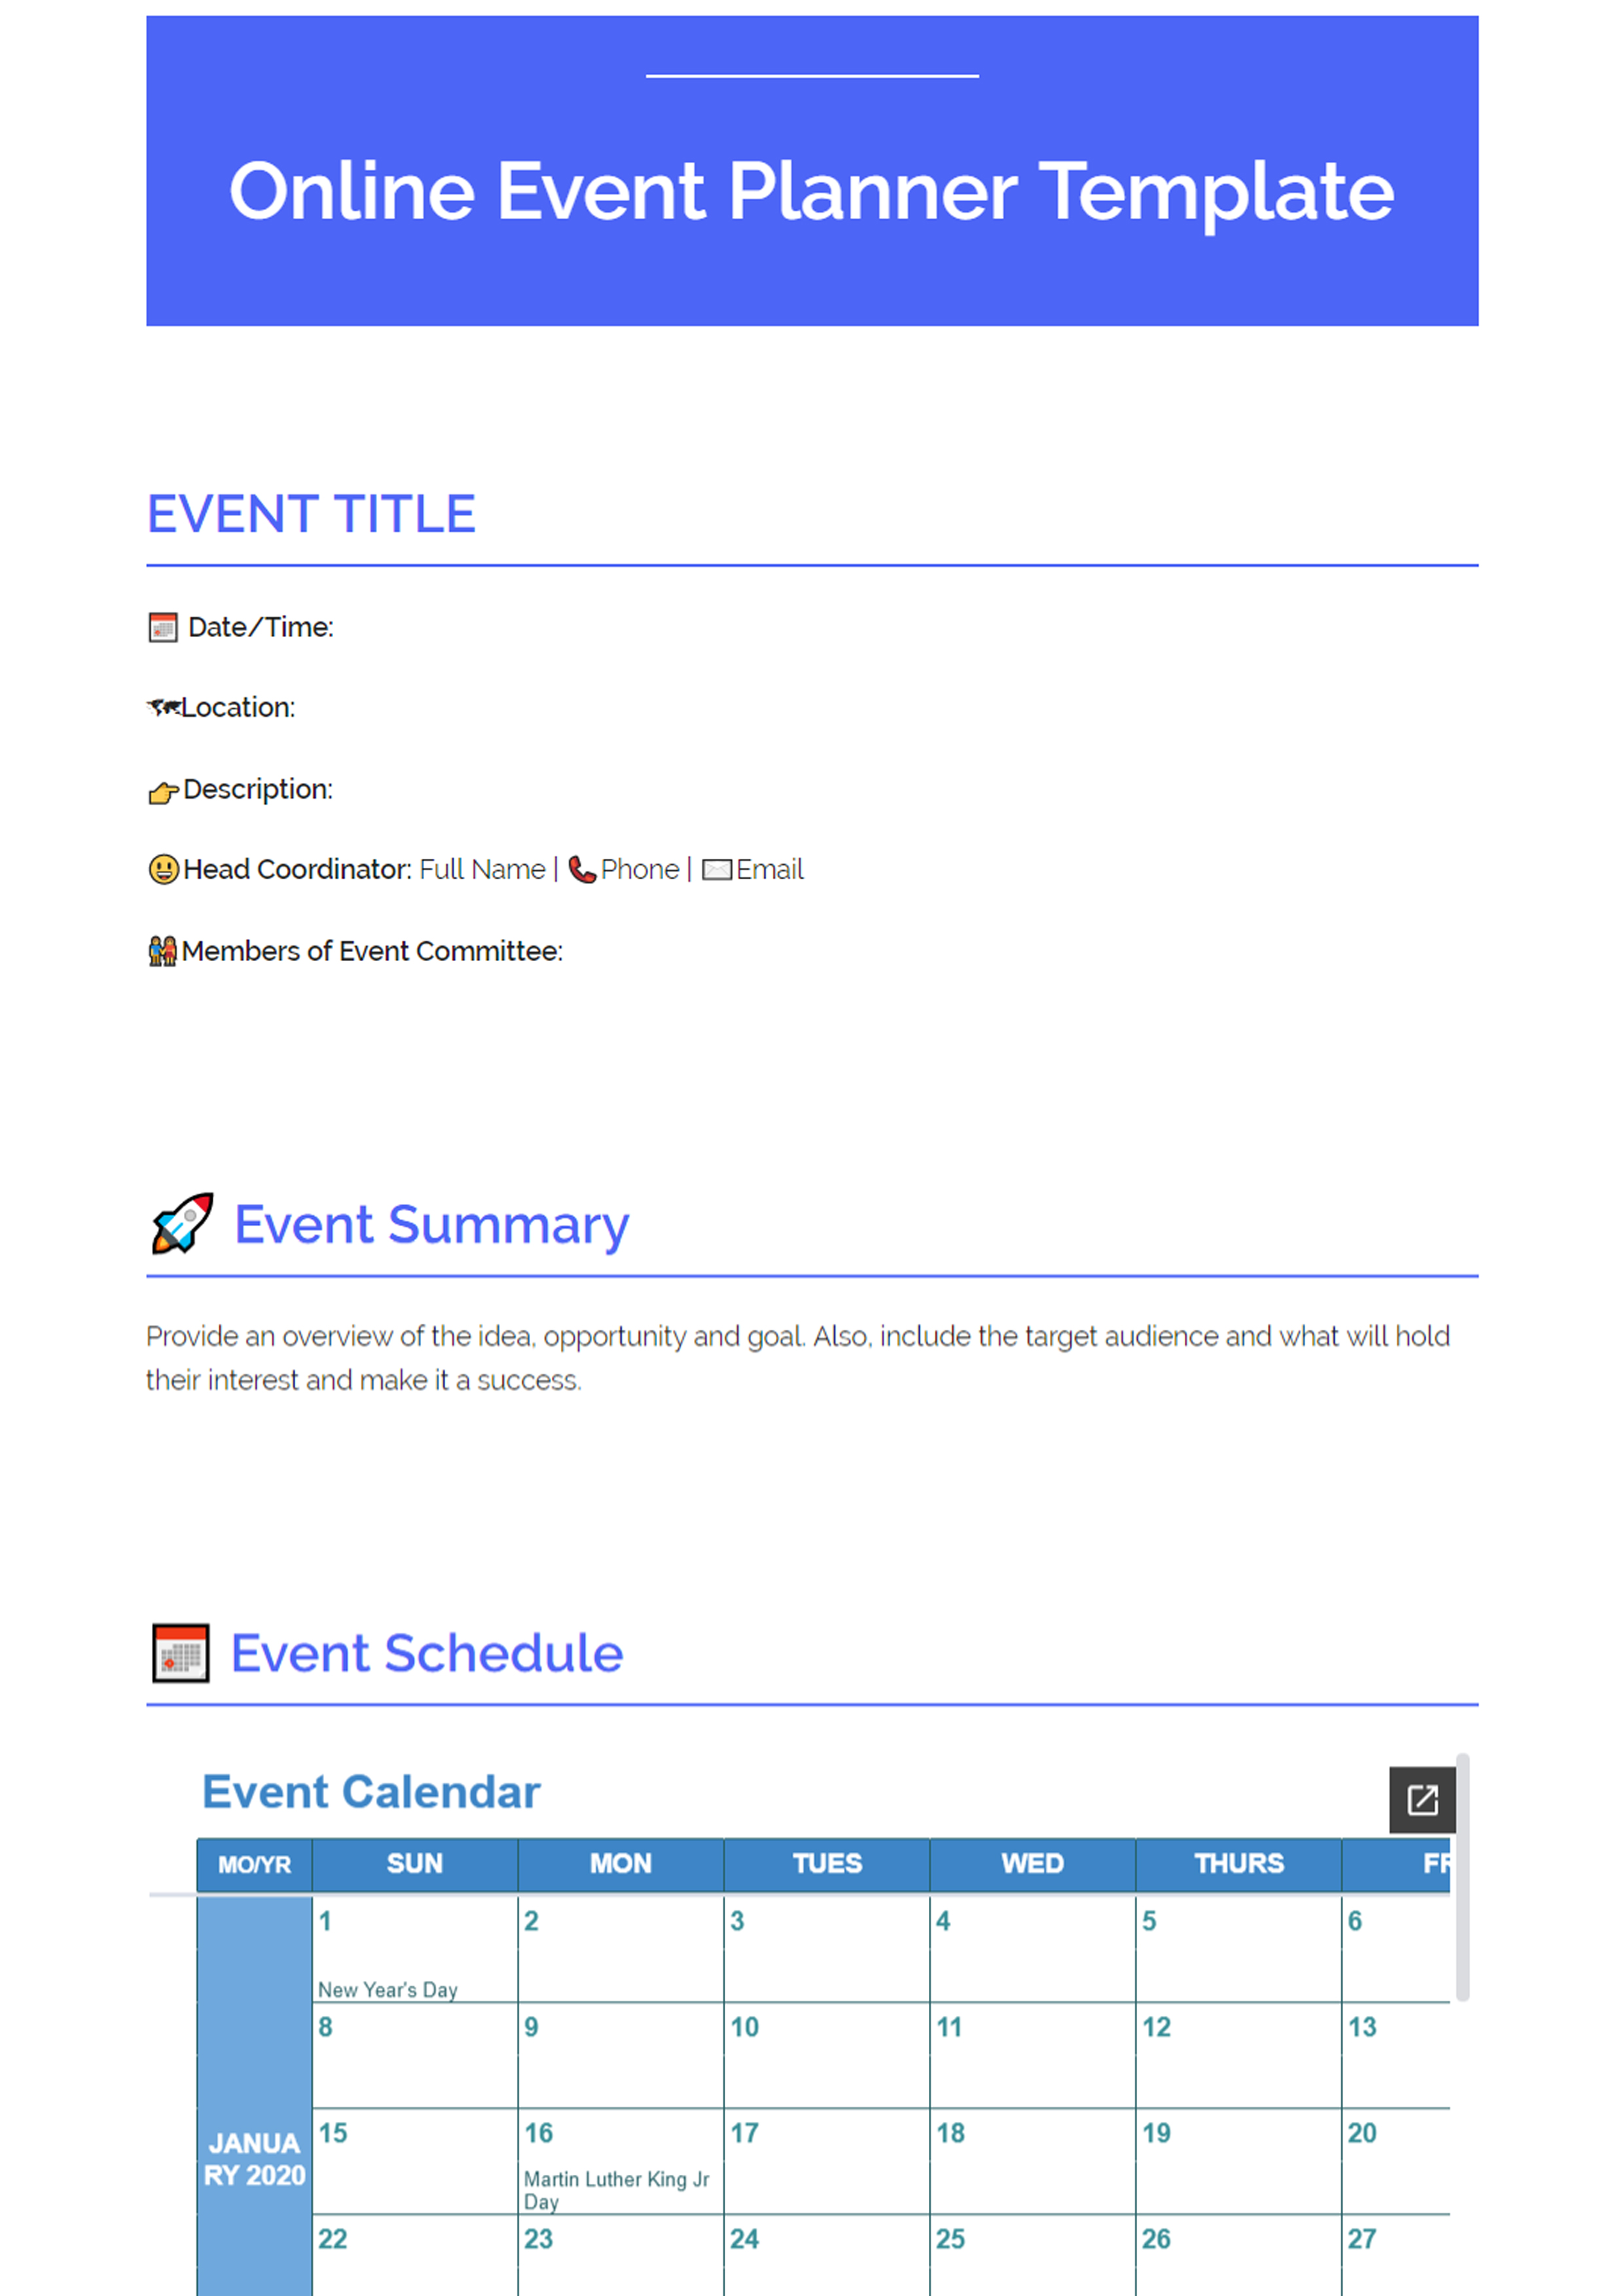 Online Event Planning Template